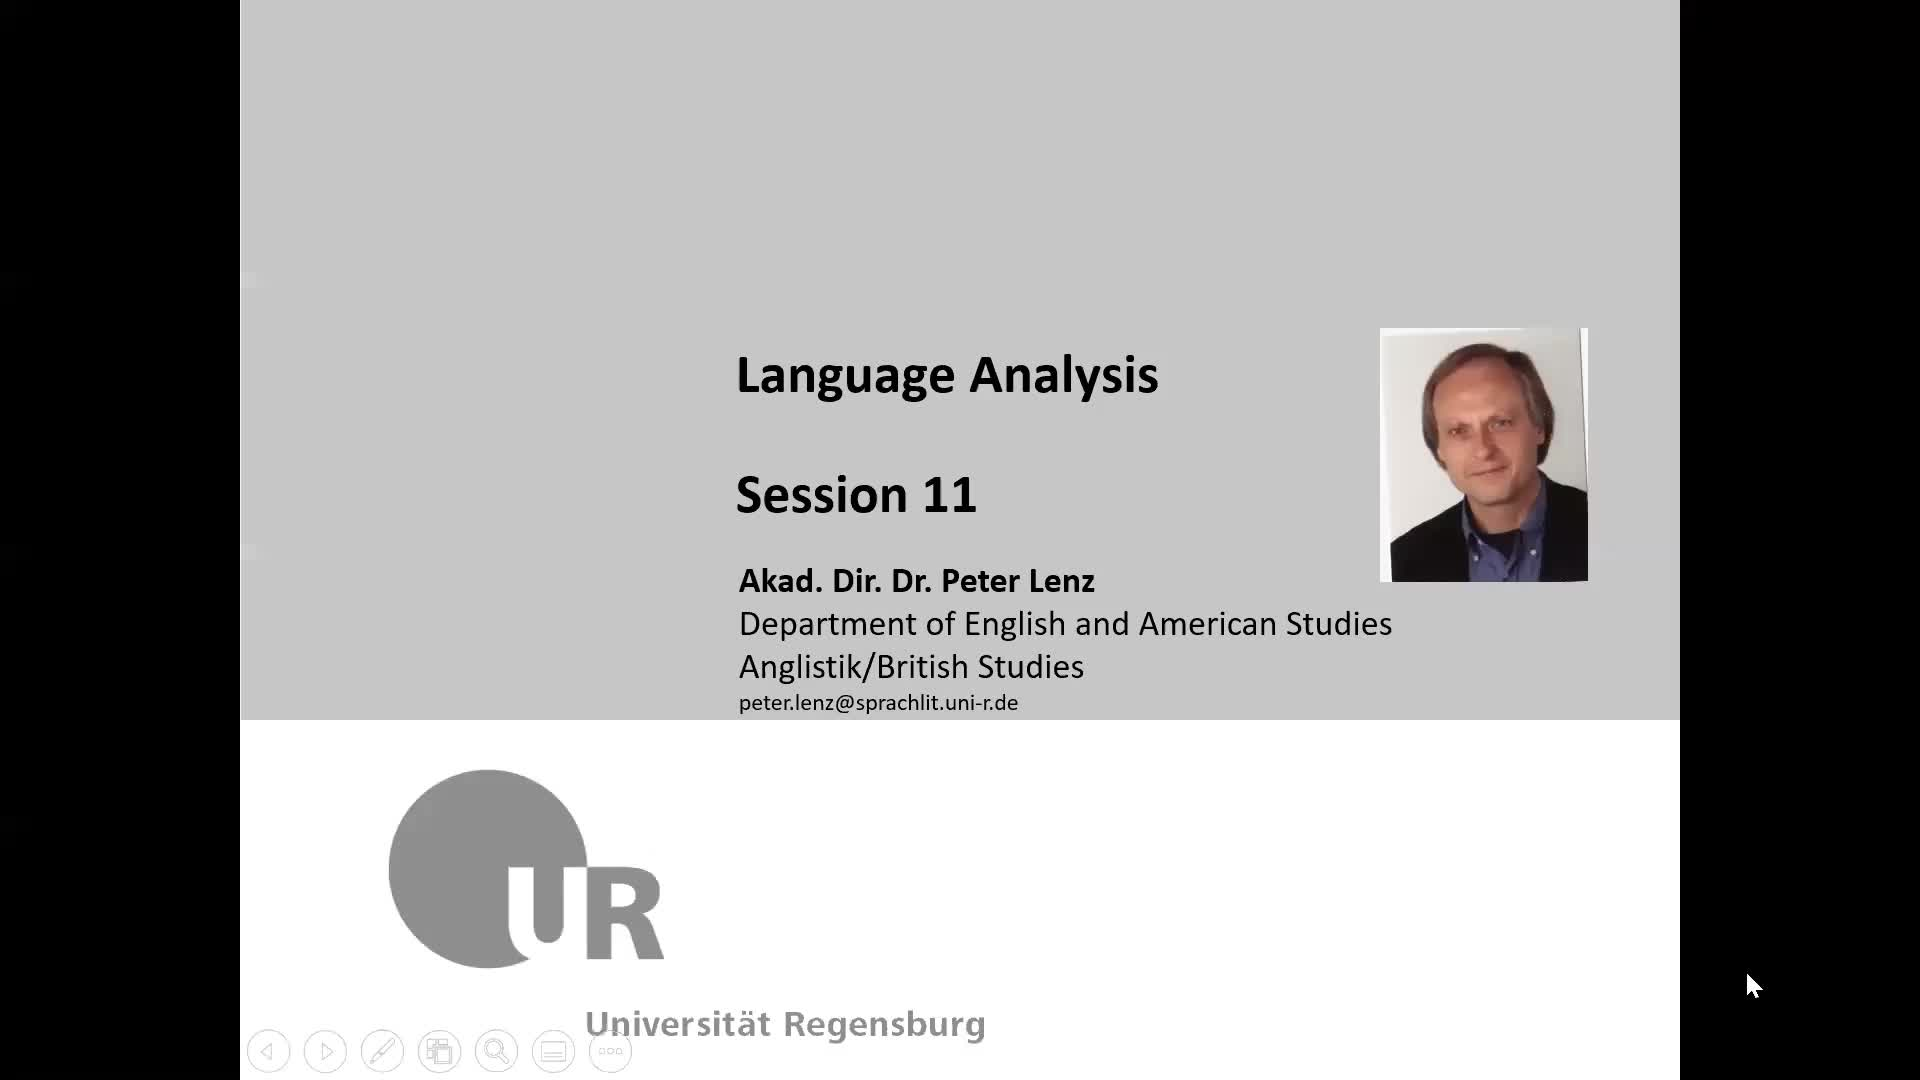 Language Analysis Session 11 Video